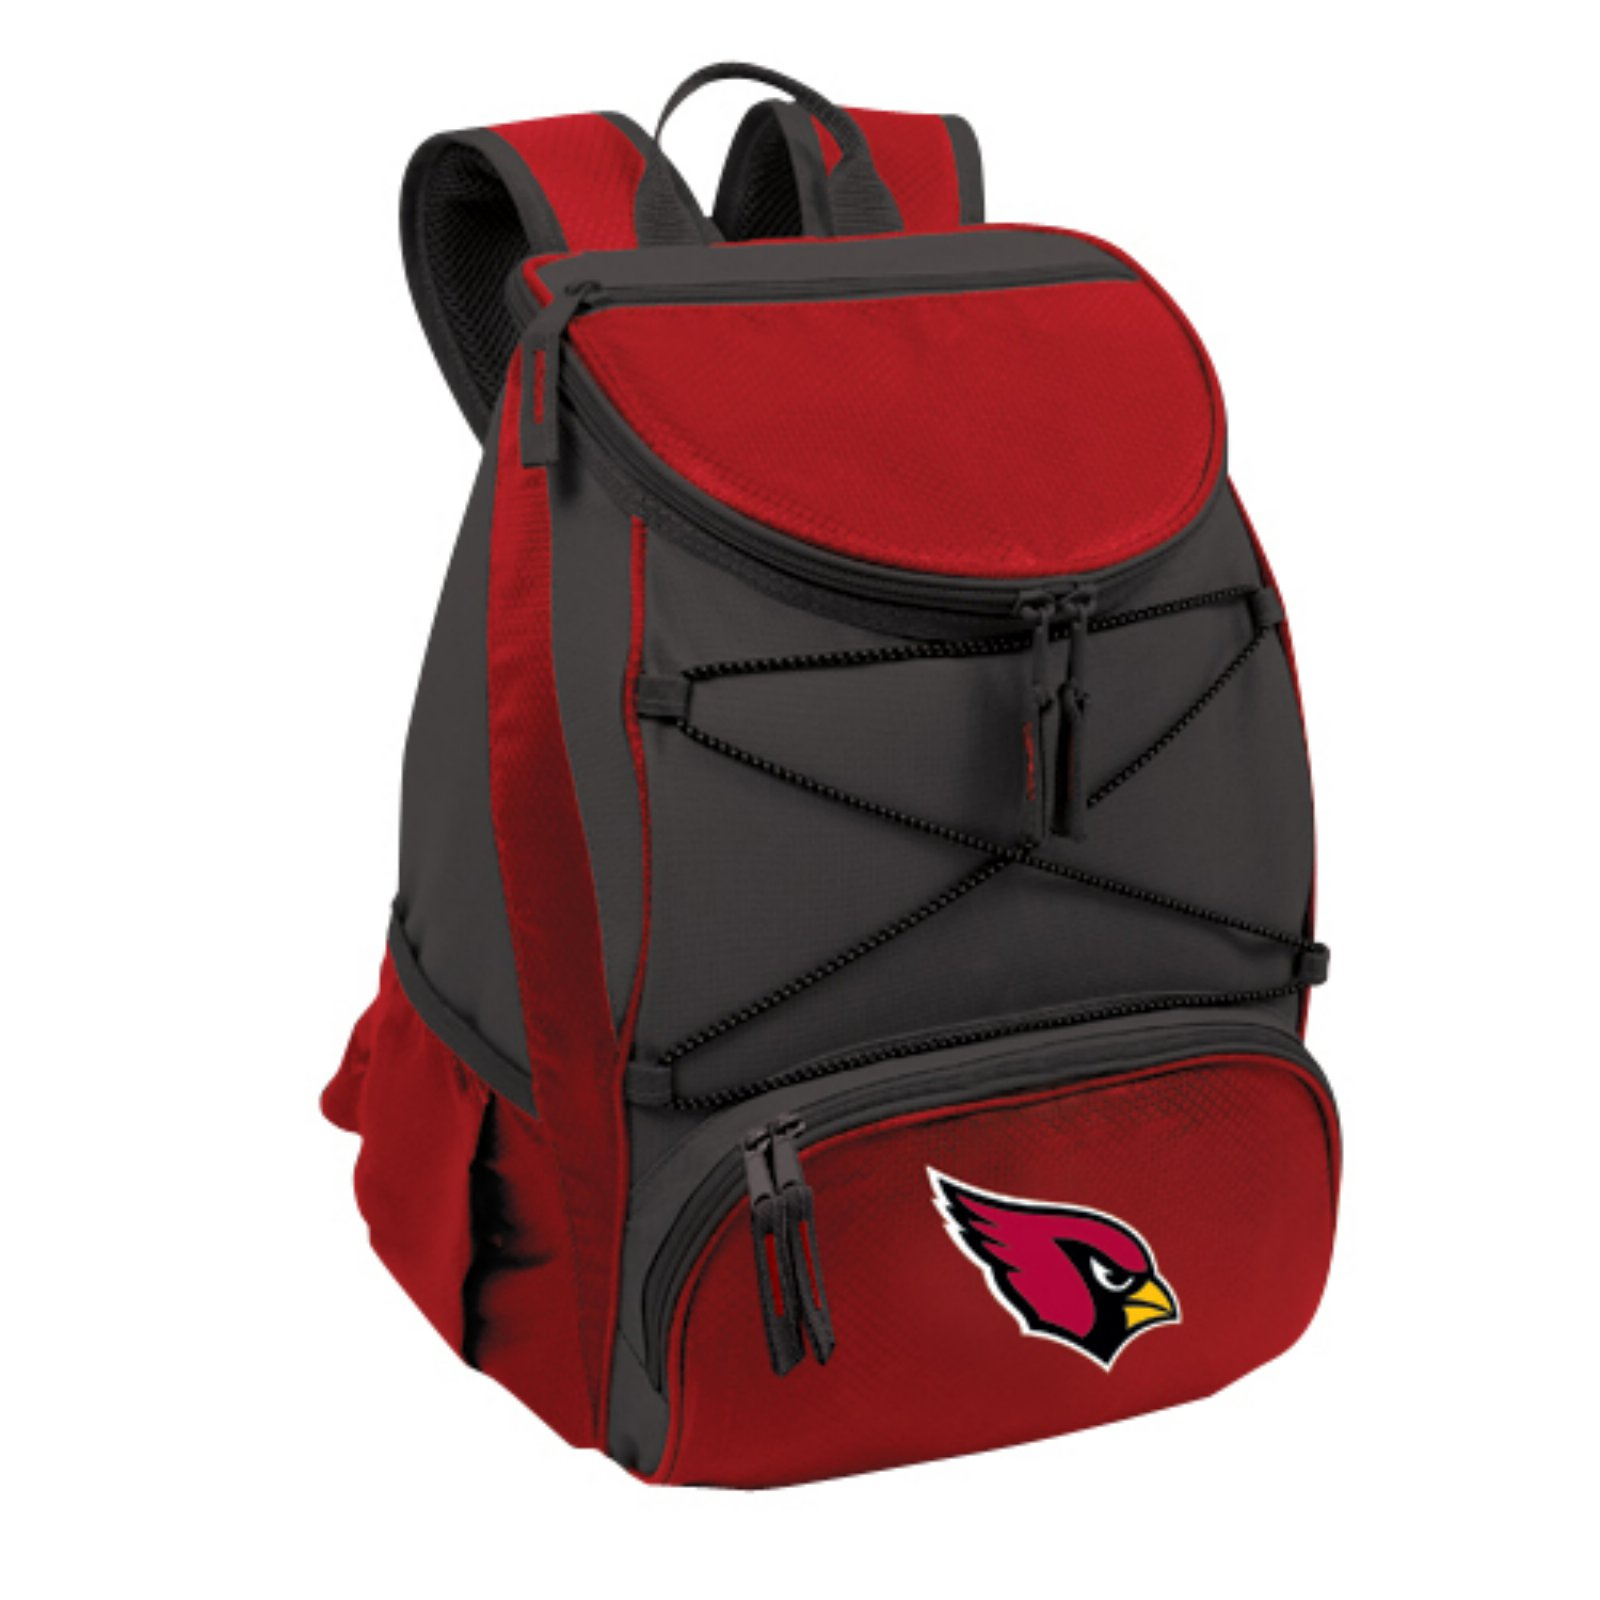 Picnic Time PTX Cooler, Black Arizona Cardinals Digital Print